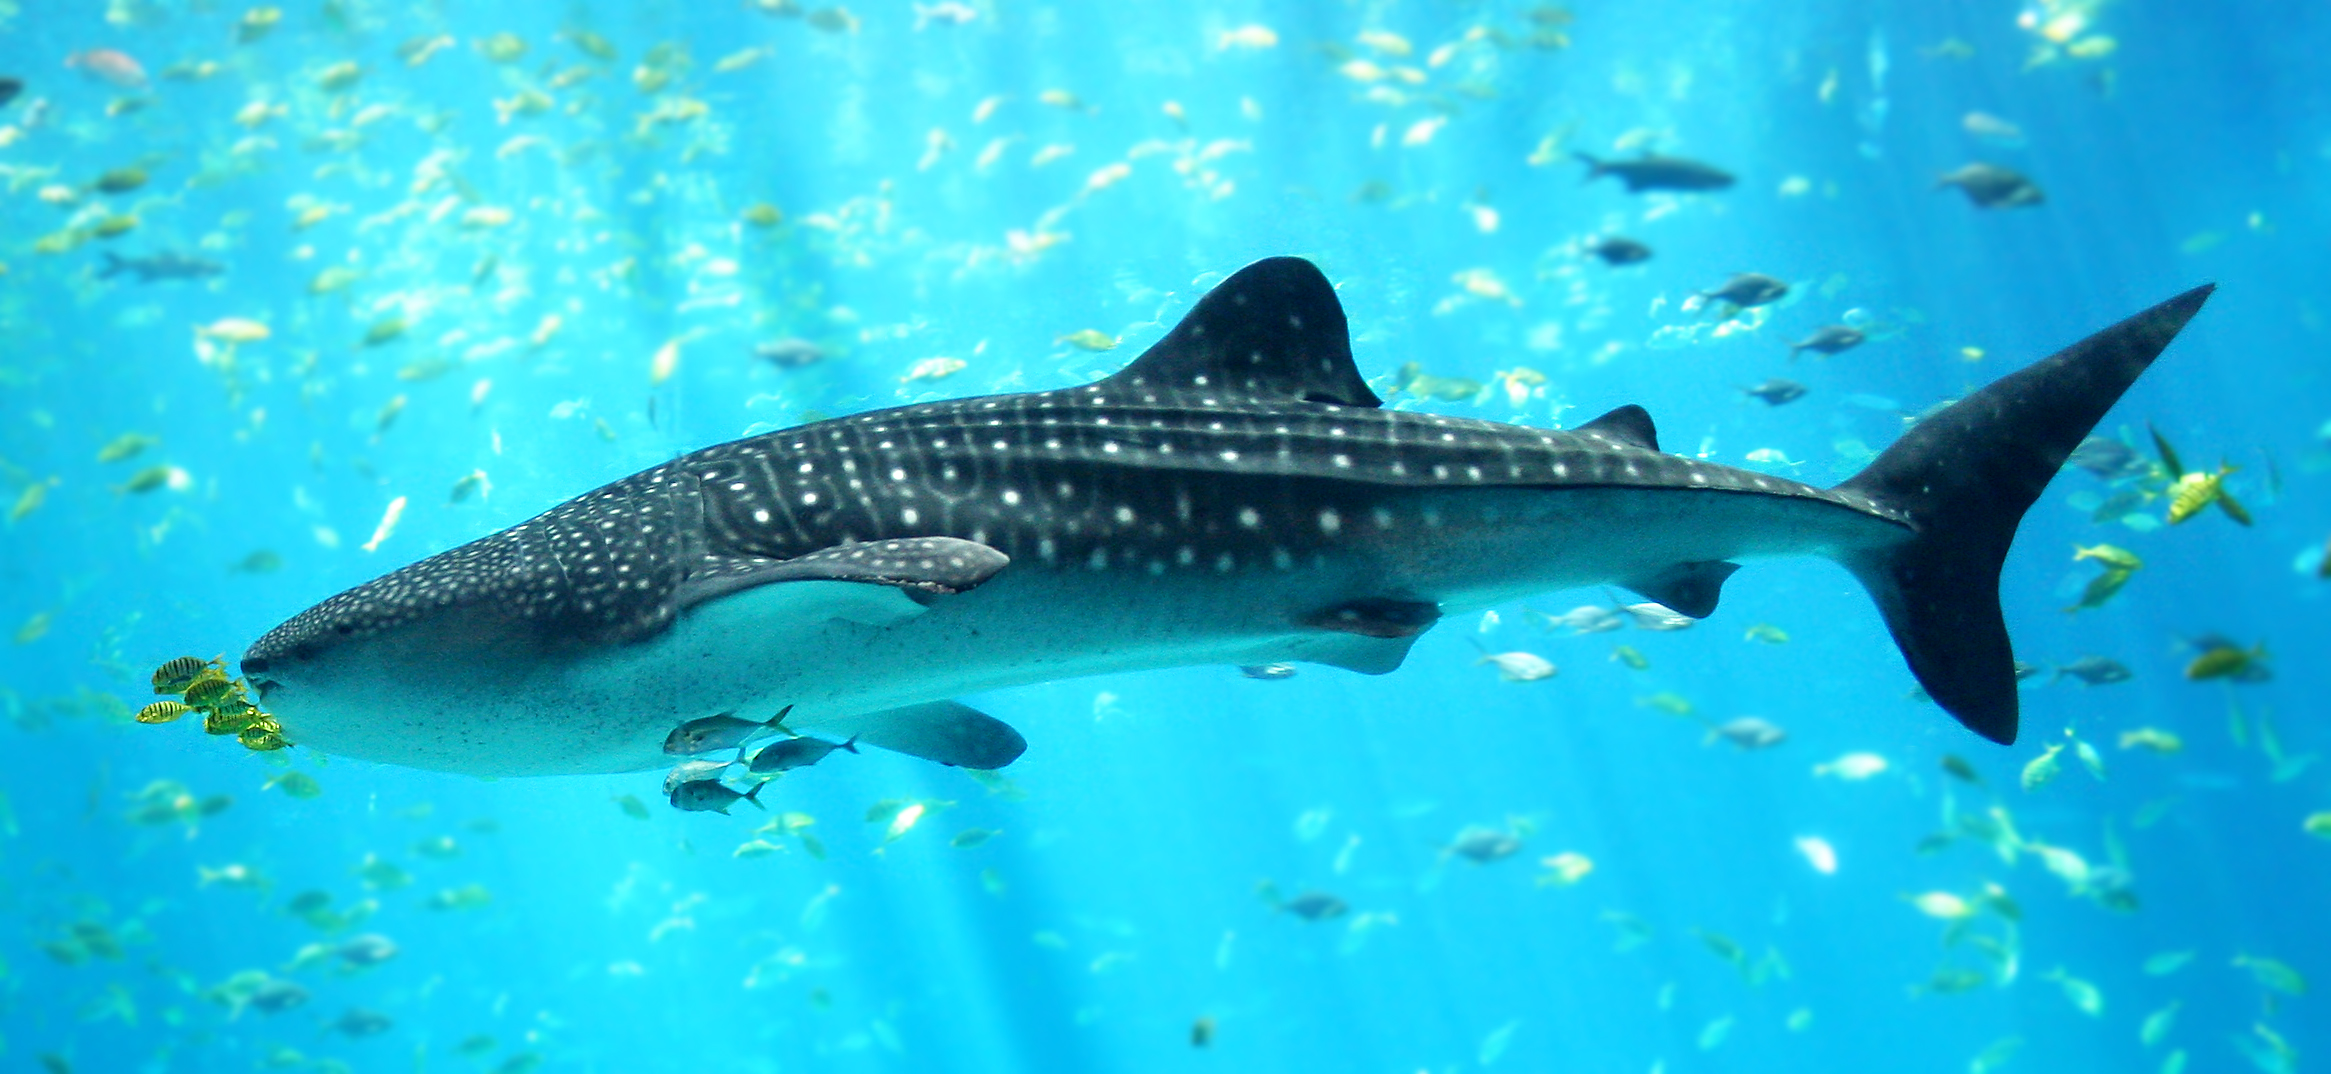 Whale Shark - photo from <a href='https://commons.wikimedia.org/wiki/File:Whale_shark_Georgia_aquarium.jpg'>Wikimedia</a>